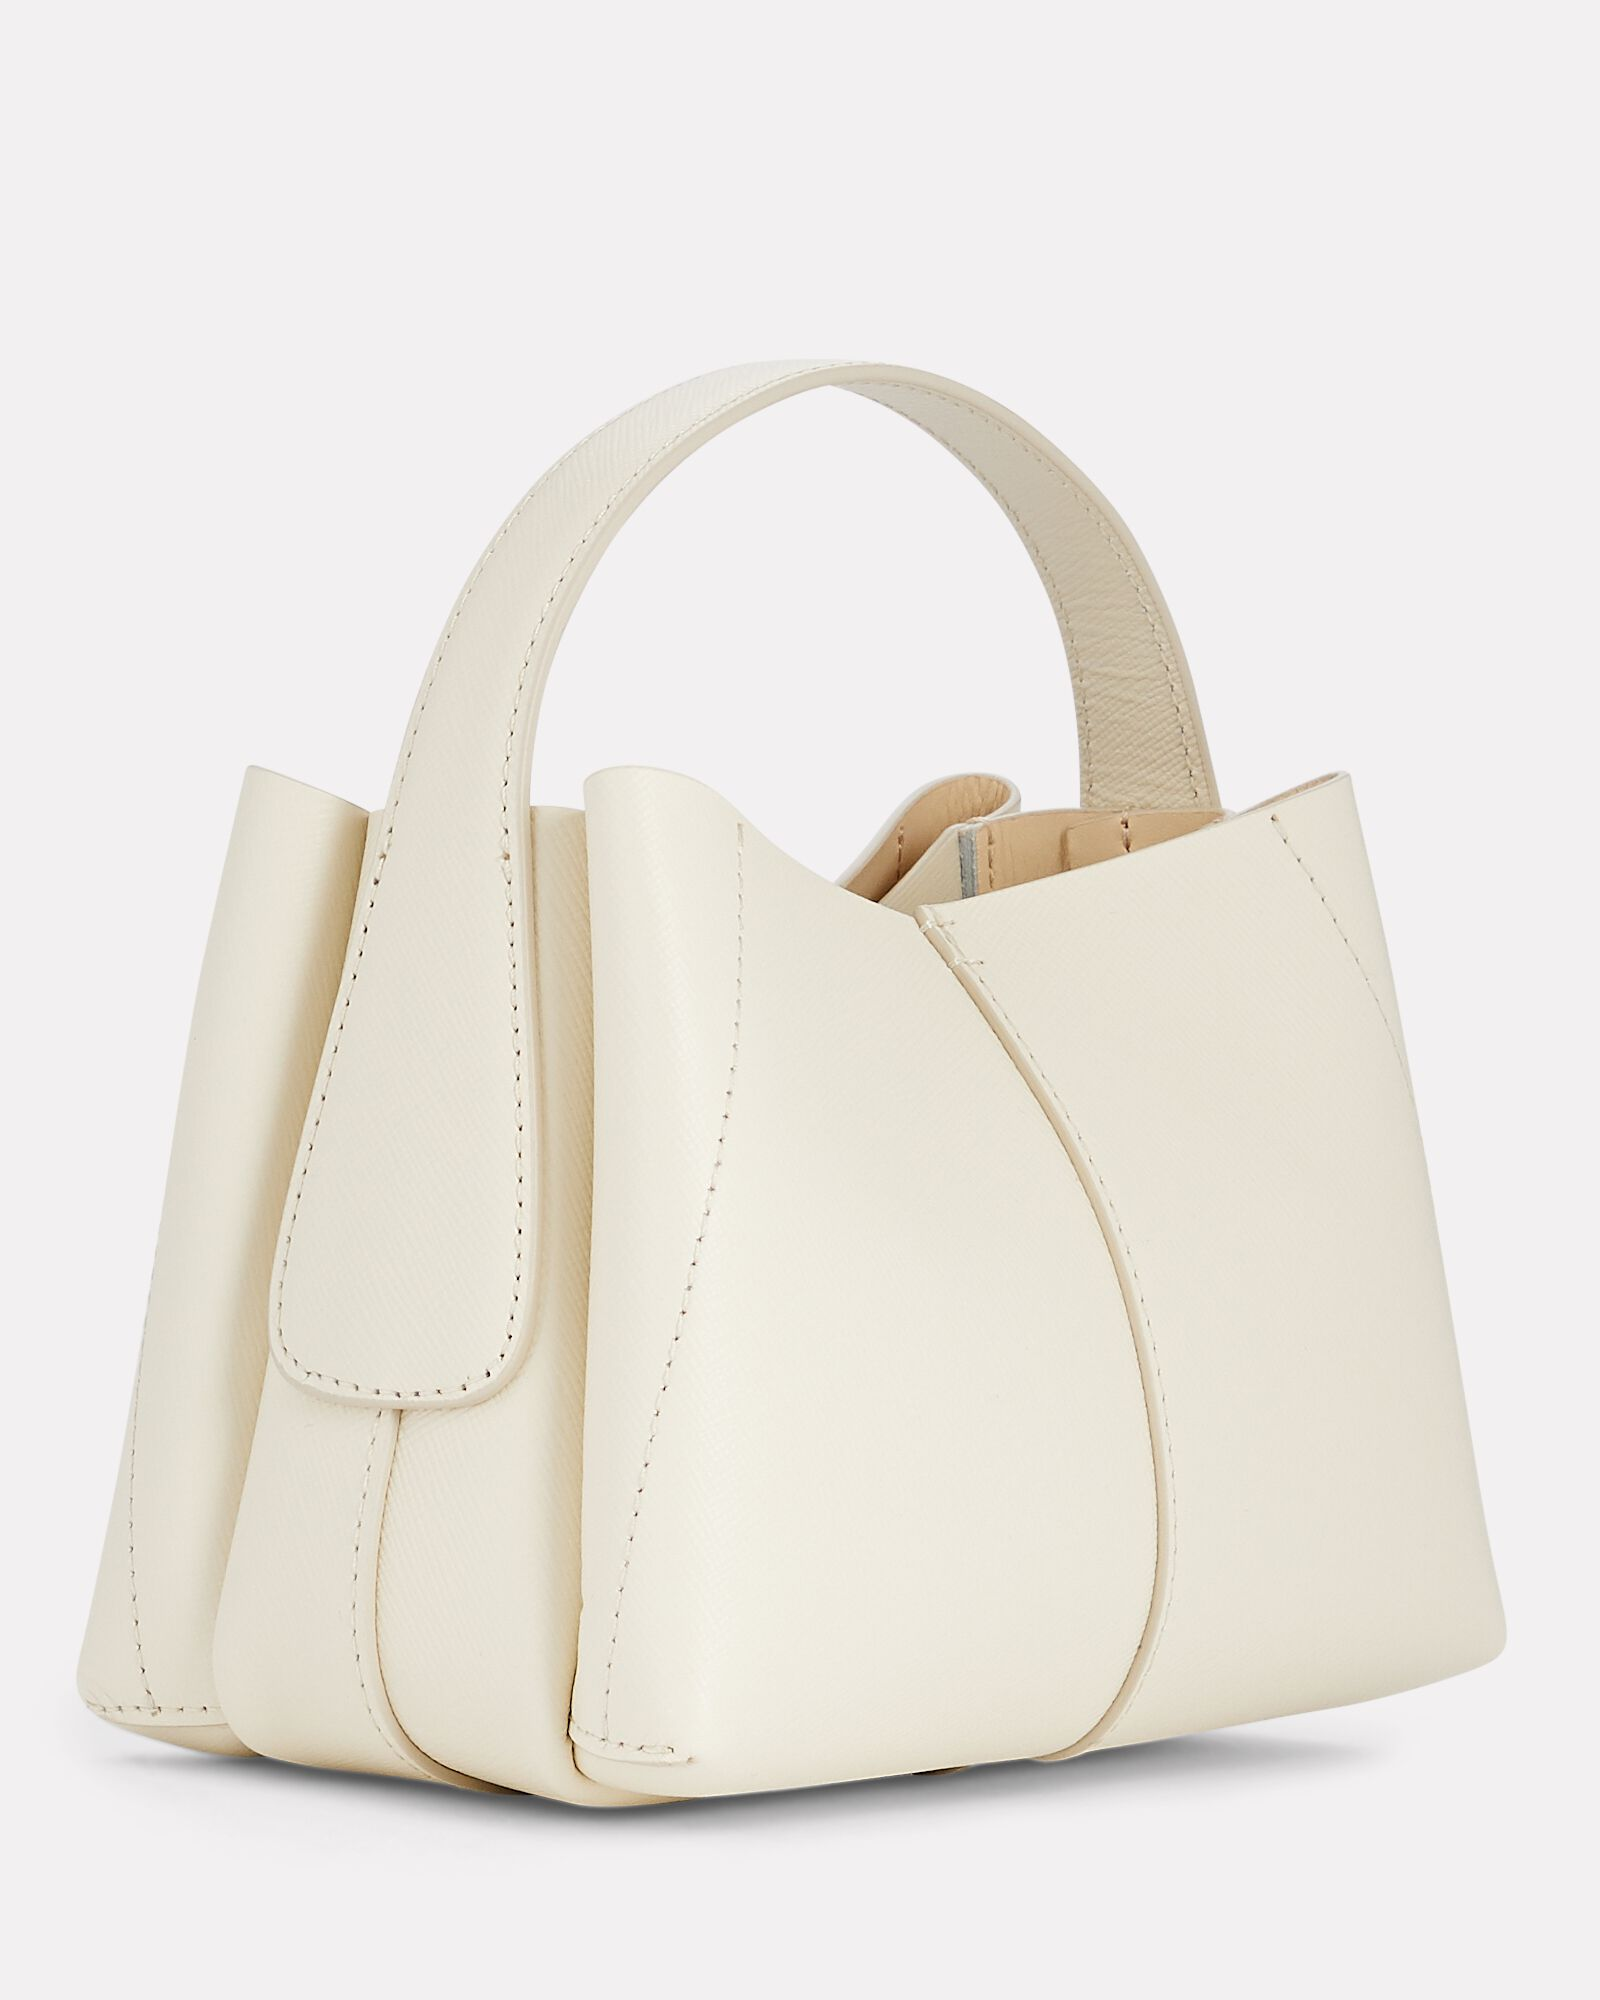 Ava Micro Leather Tote Bag, IVORY, hi-res